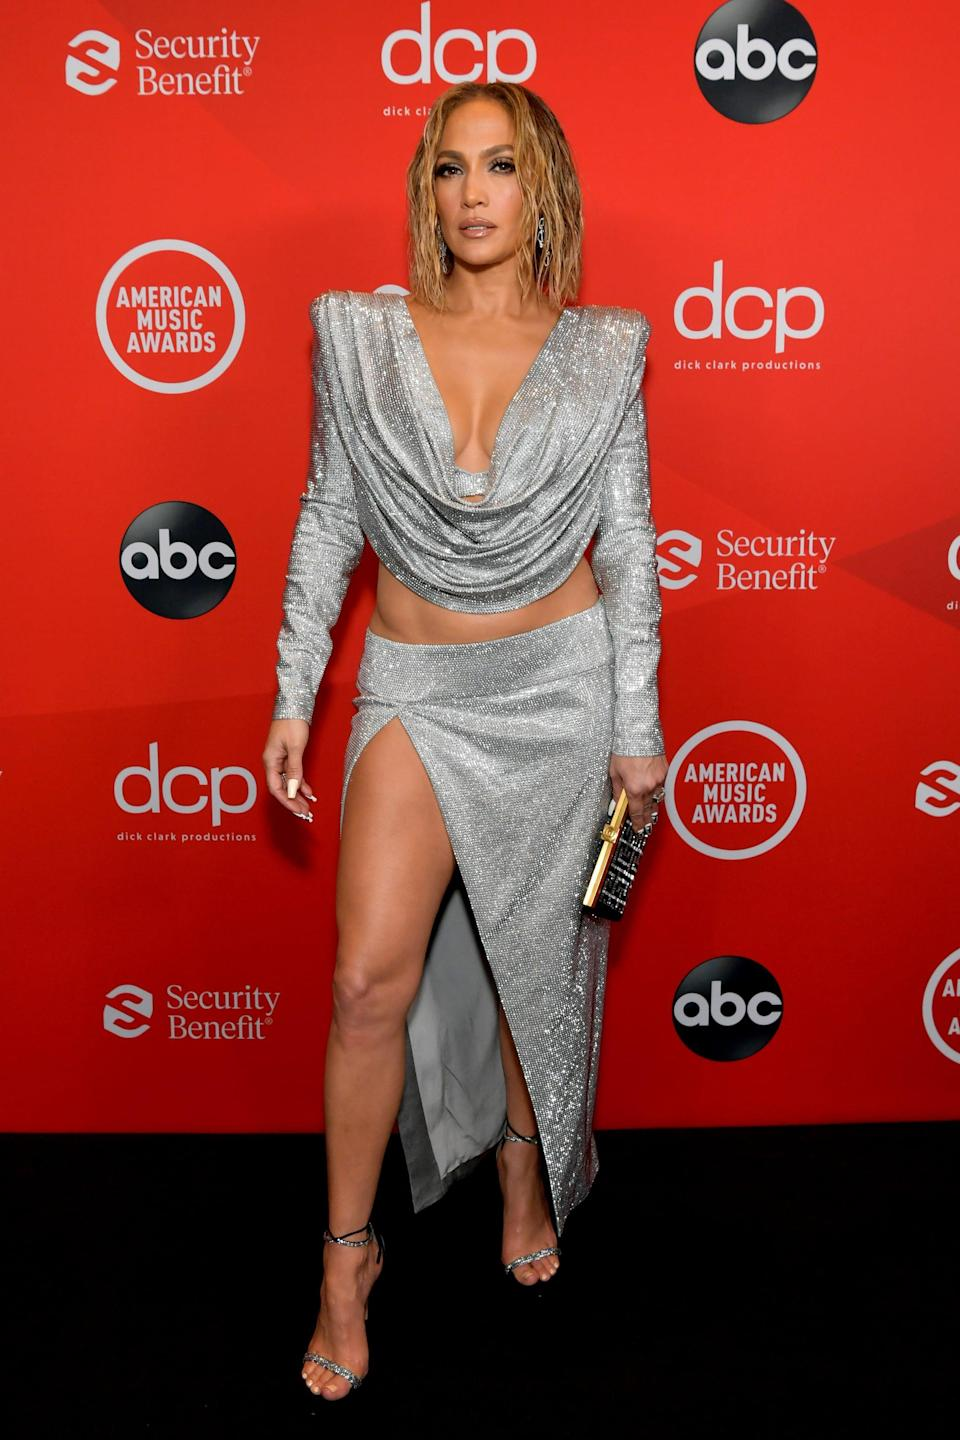 "<p><a href=""https://www.popsugar.com/fashion/jennifer-lopez-american-music-awards-2020-outfit-47994496"" class=""link rapid-noclick-resp"" rel=""nofollow noopener"" target=""_blank"" data-ylk=""slk:Wearing a Balmain look"">Wearing a Balmain look</a> with jewels by Luminous Diamonds. See <a href=""https://www.popsugar.com/fashion/jennifer-lopez-american-music-awards-bodysuit-2020-47995095"" class=""link rapid-noclick-resp"" rel=""nofollow noopener"" target=""_blank"" data-ylk=""slk:her LaQuan Smith performance look here"">her LaQuan Smith performance look here</a>.</p>"